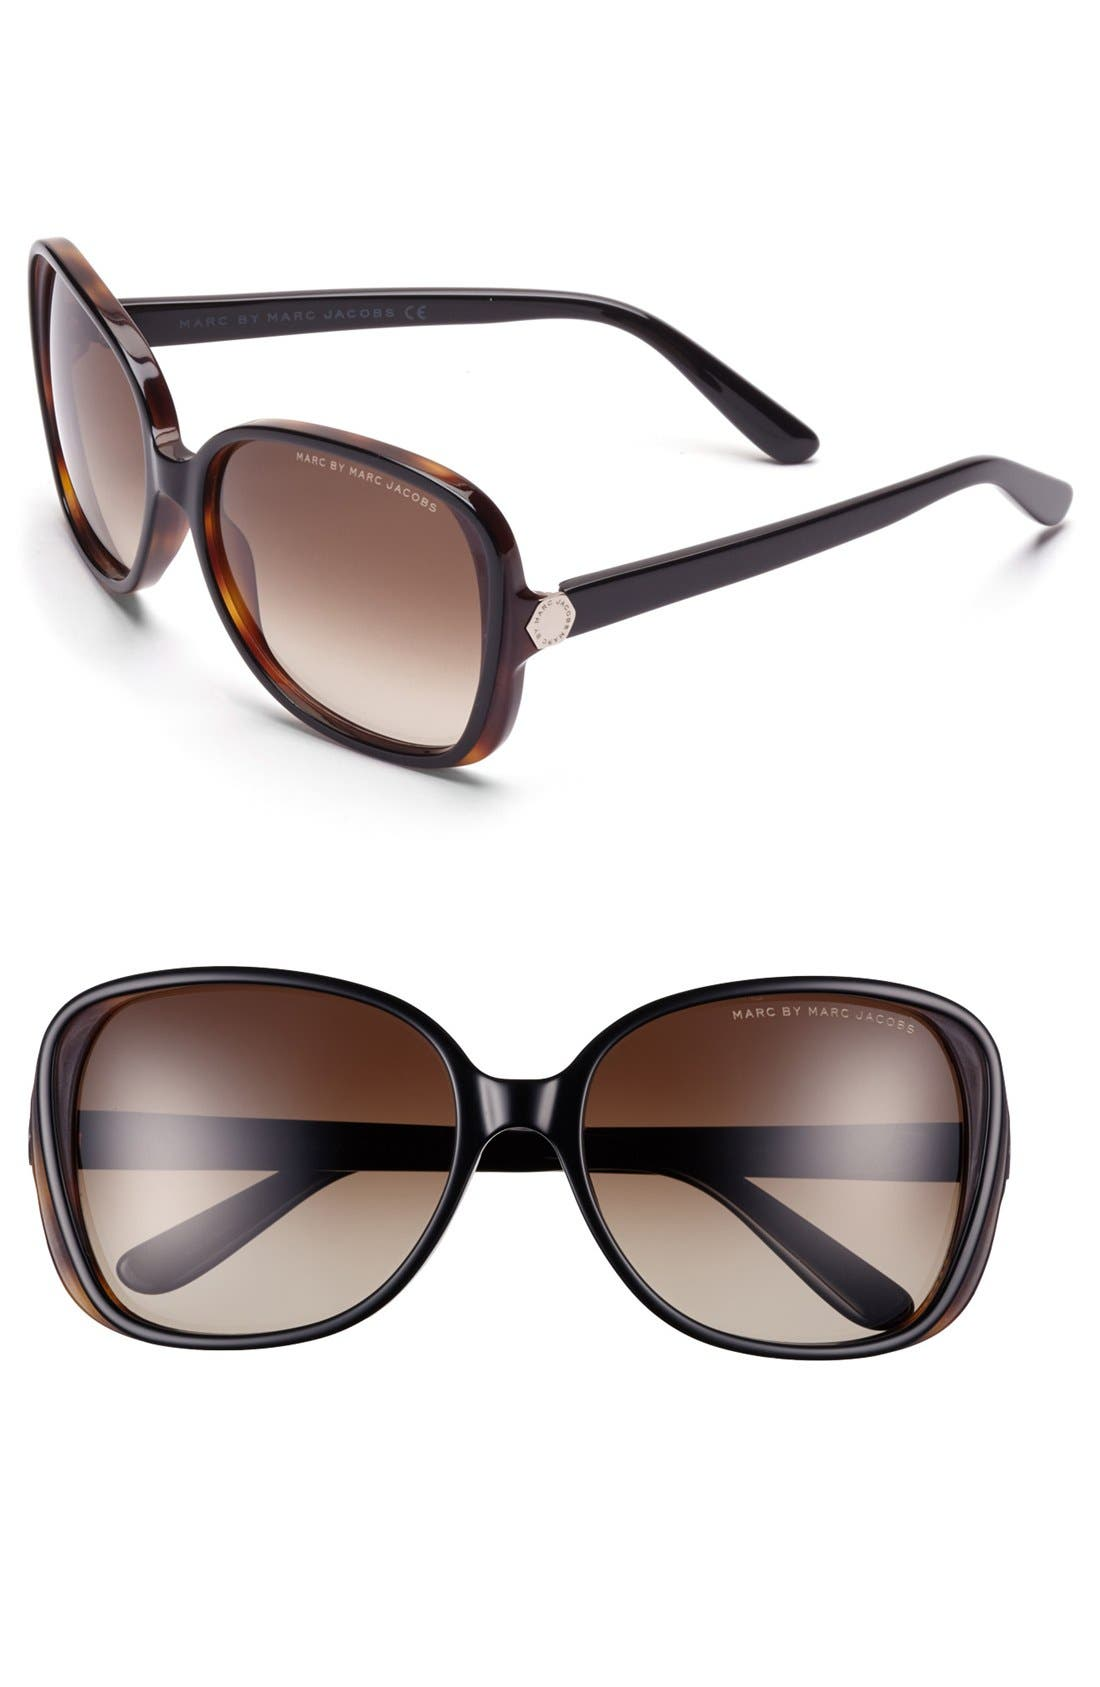 Main Image - MARC BY MARC JACOBS 57mm Sunglasses